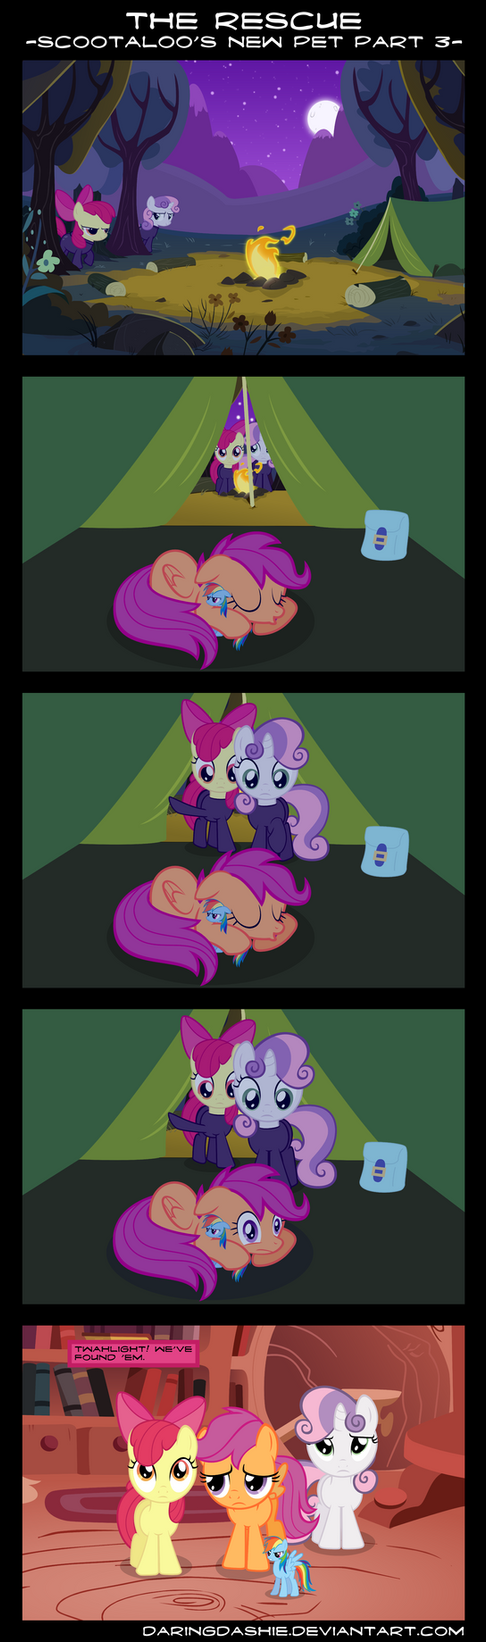 The Rescue - Scootaloo's New Pet Part 3 by DaringDashie